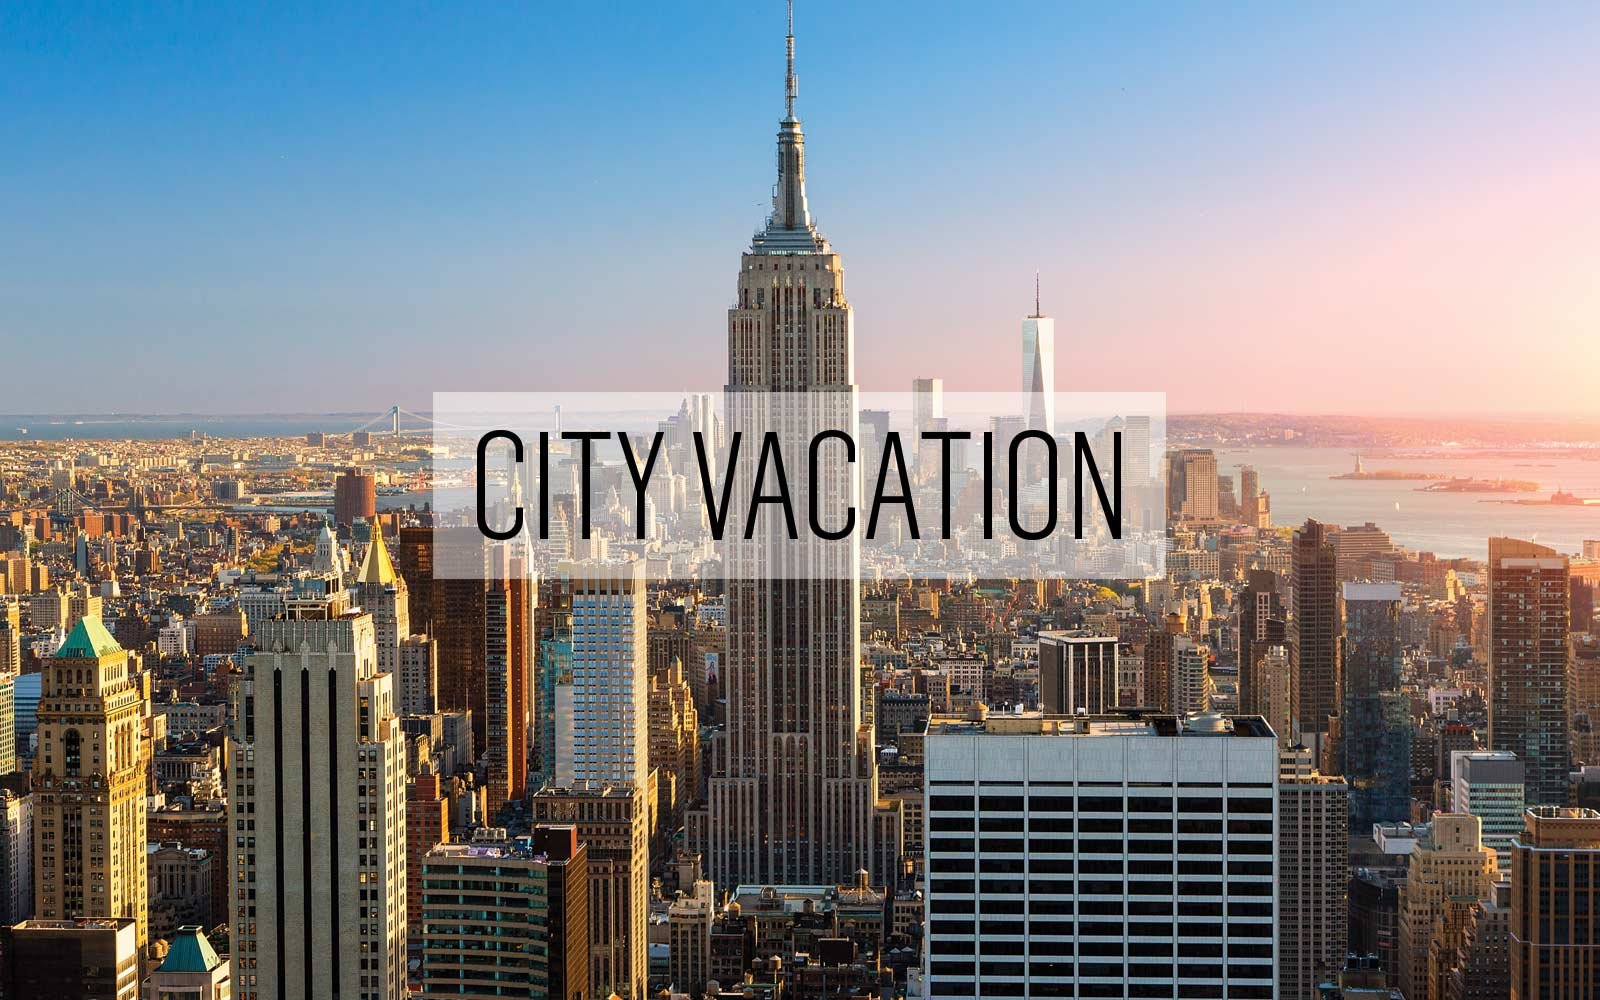 City Vacation